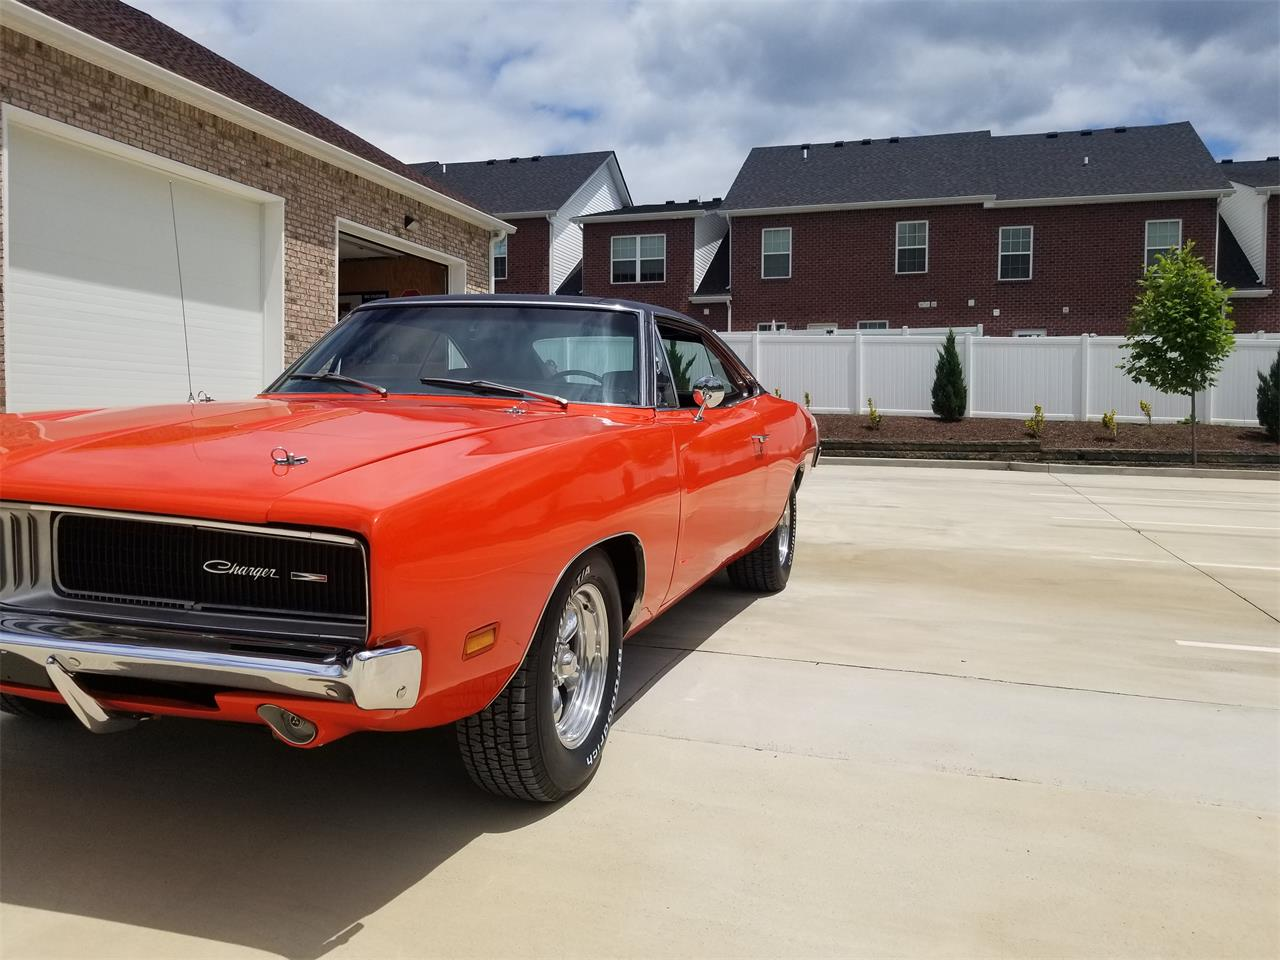 Large Picture of Classic 1969 Dodge Charger located in Tennessee Offered by a Private Seller - Q45J